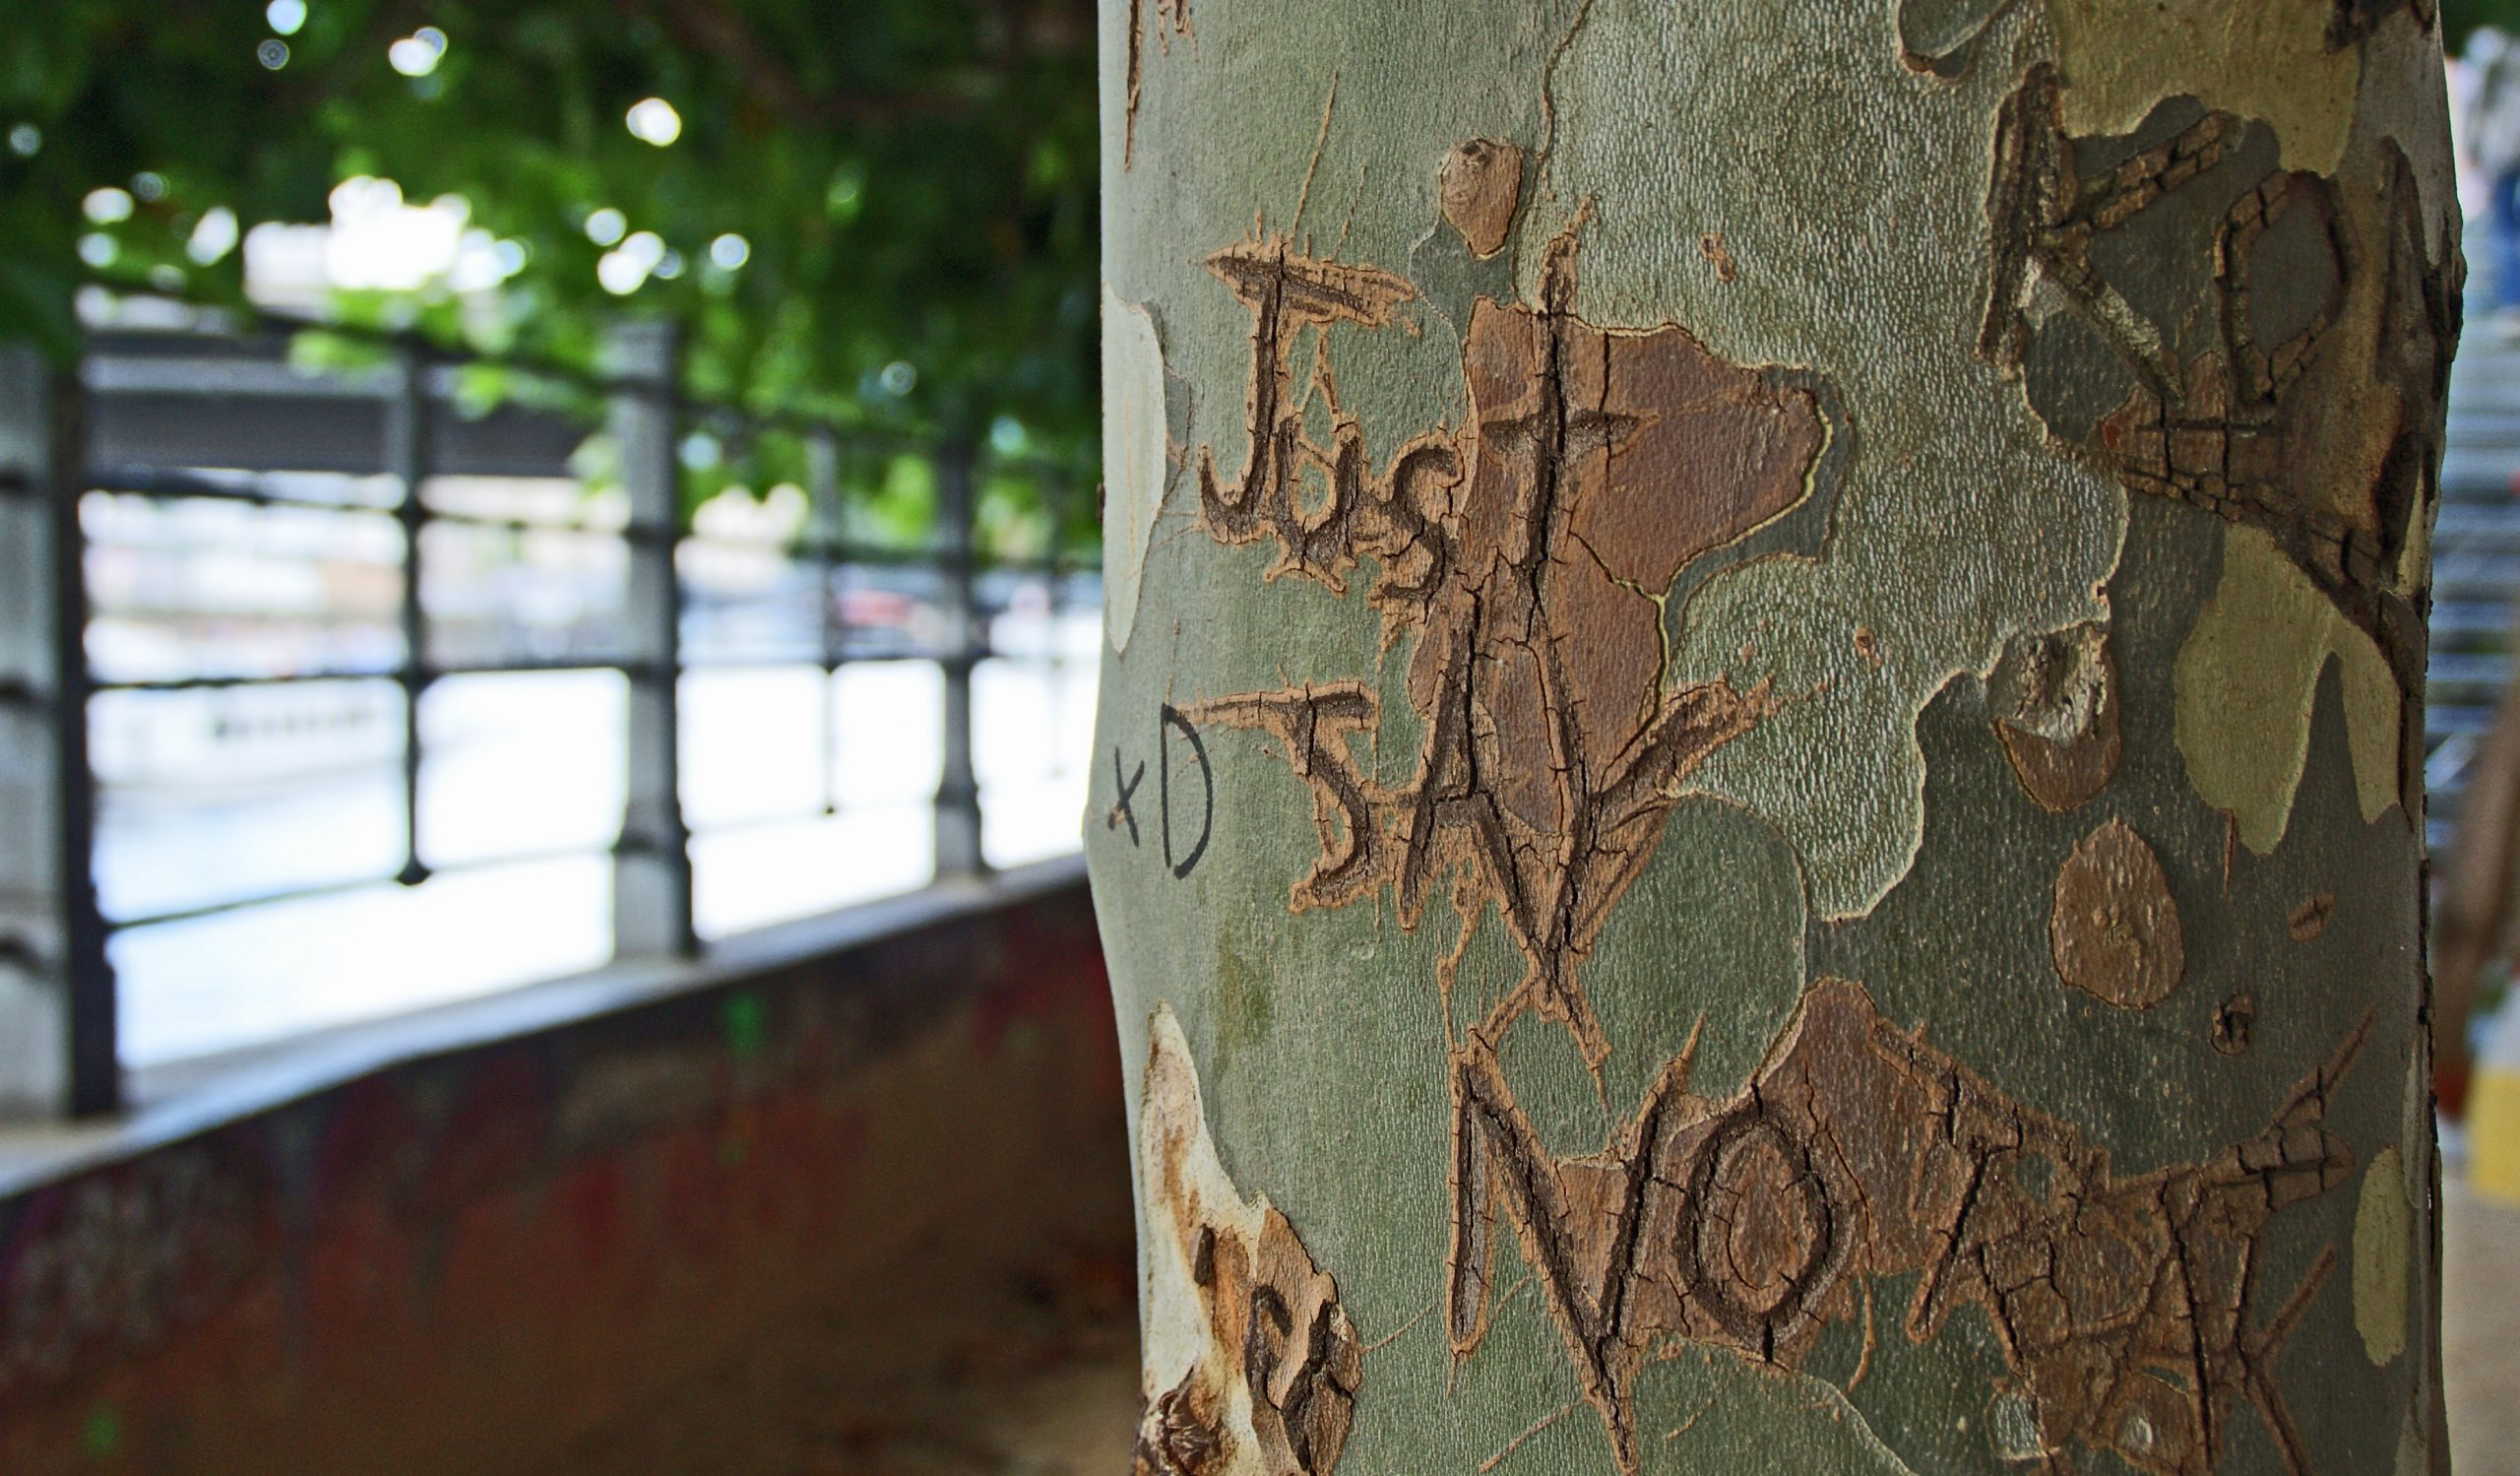 Are you a people please? Just Say No written on tree trunk